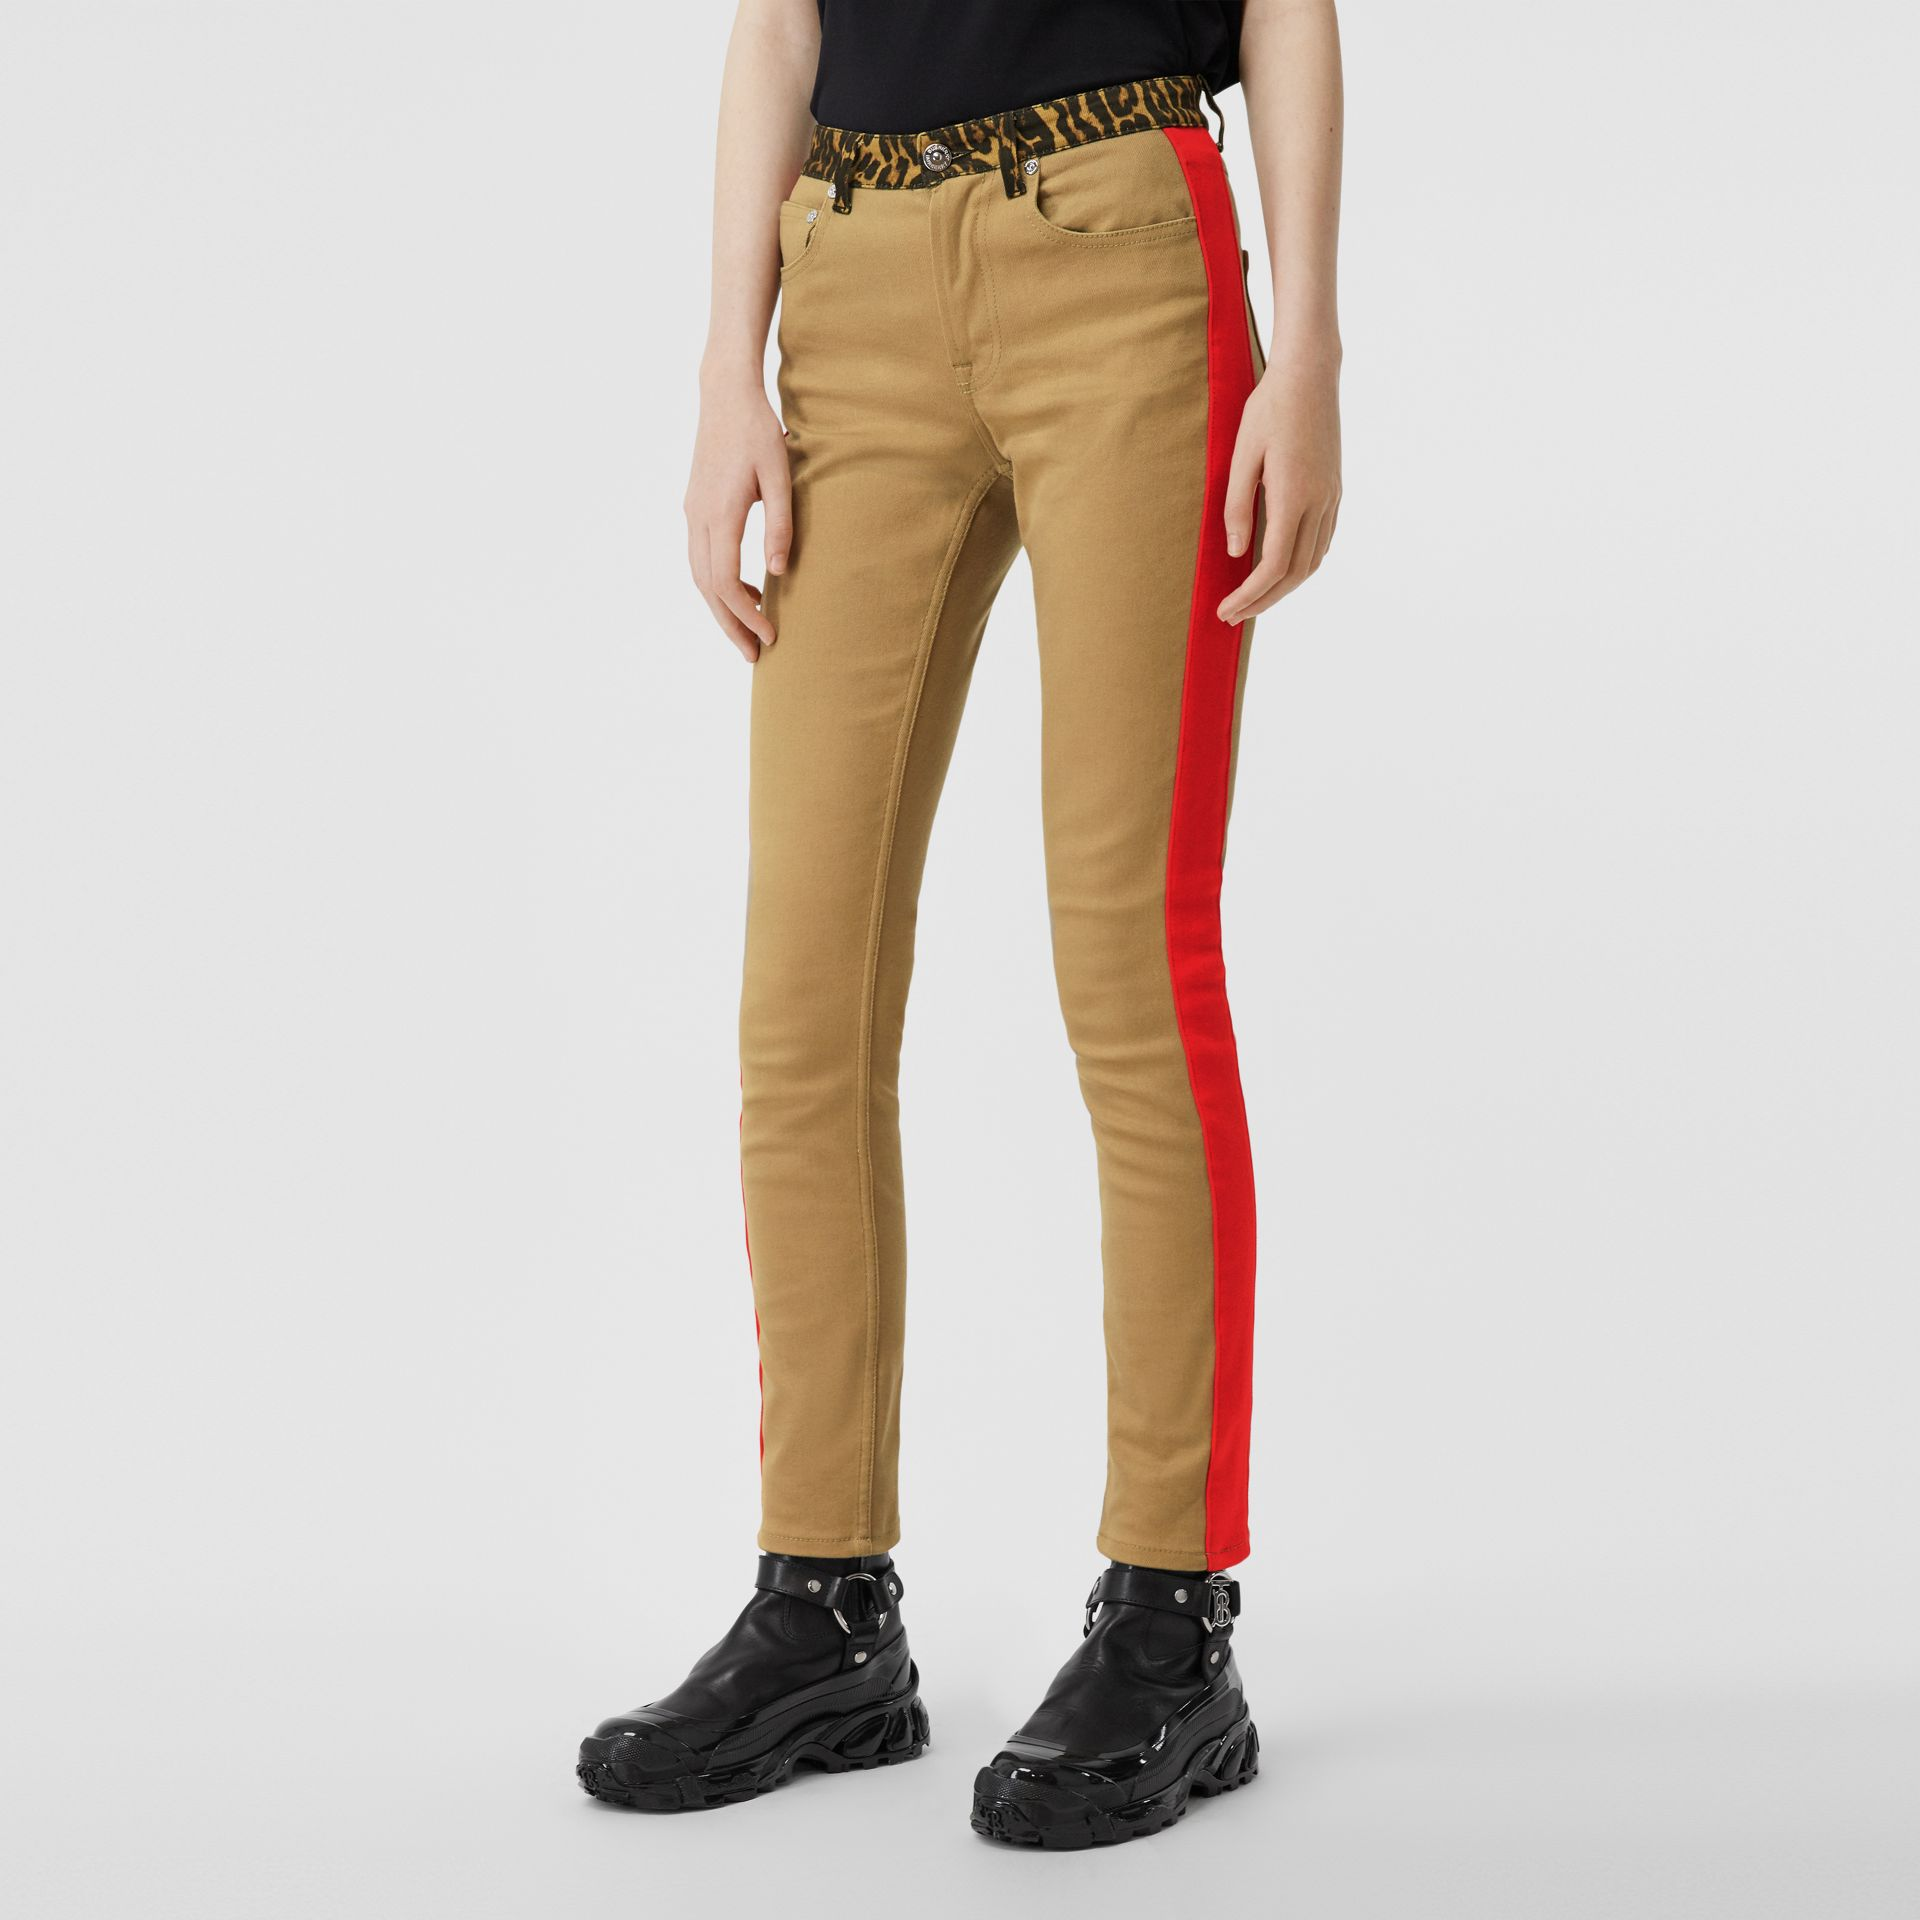 Skinny Fit Leopard Print Trim Japanese Denim Jeans in Rich Olive - Women | Burberry - gallery image 4